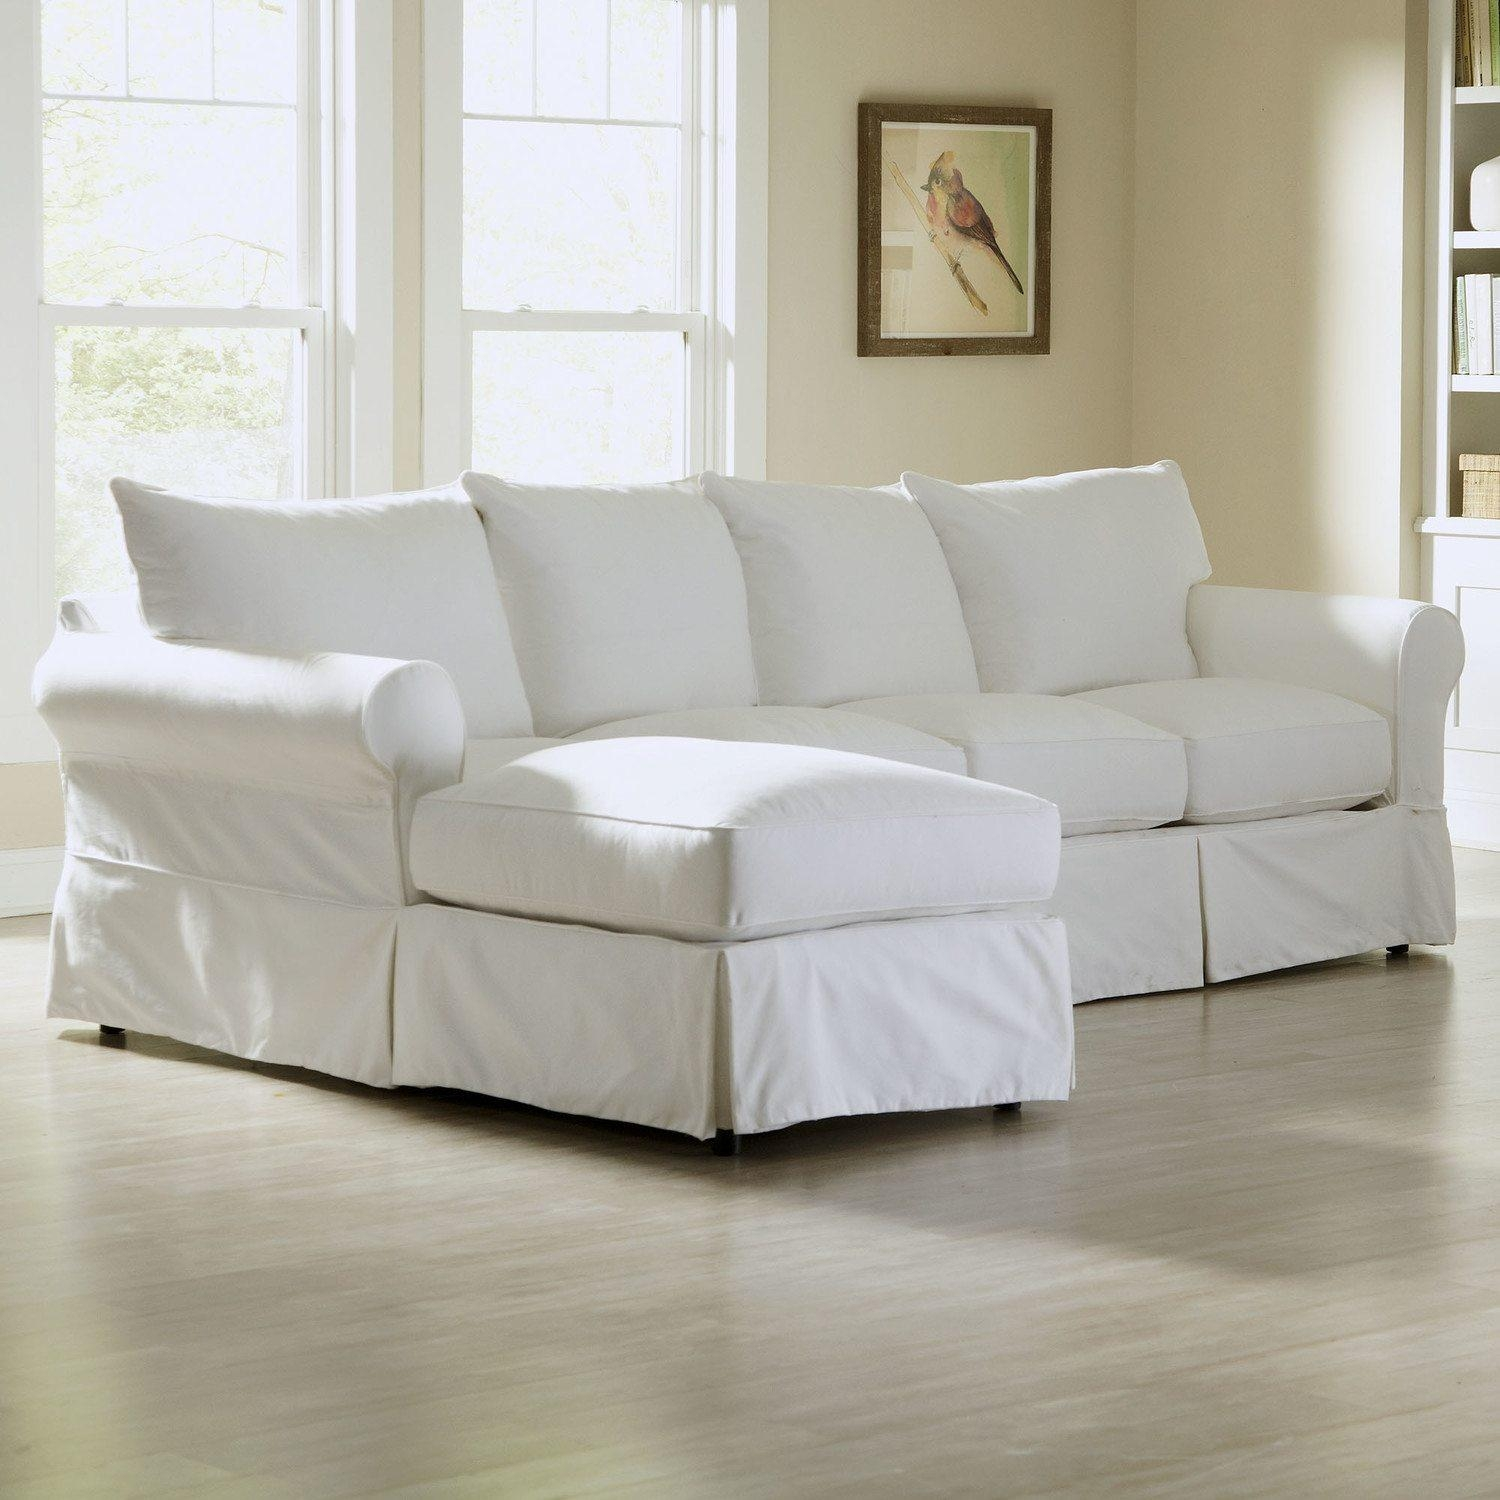 Sofas Center : Cozy Sectional Sofa With Chaise And Ottoman About With Regard To Goose Down Sectional Sofa (Image 9 of 15)